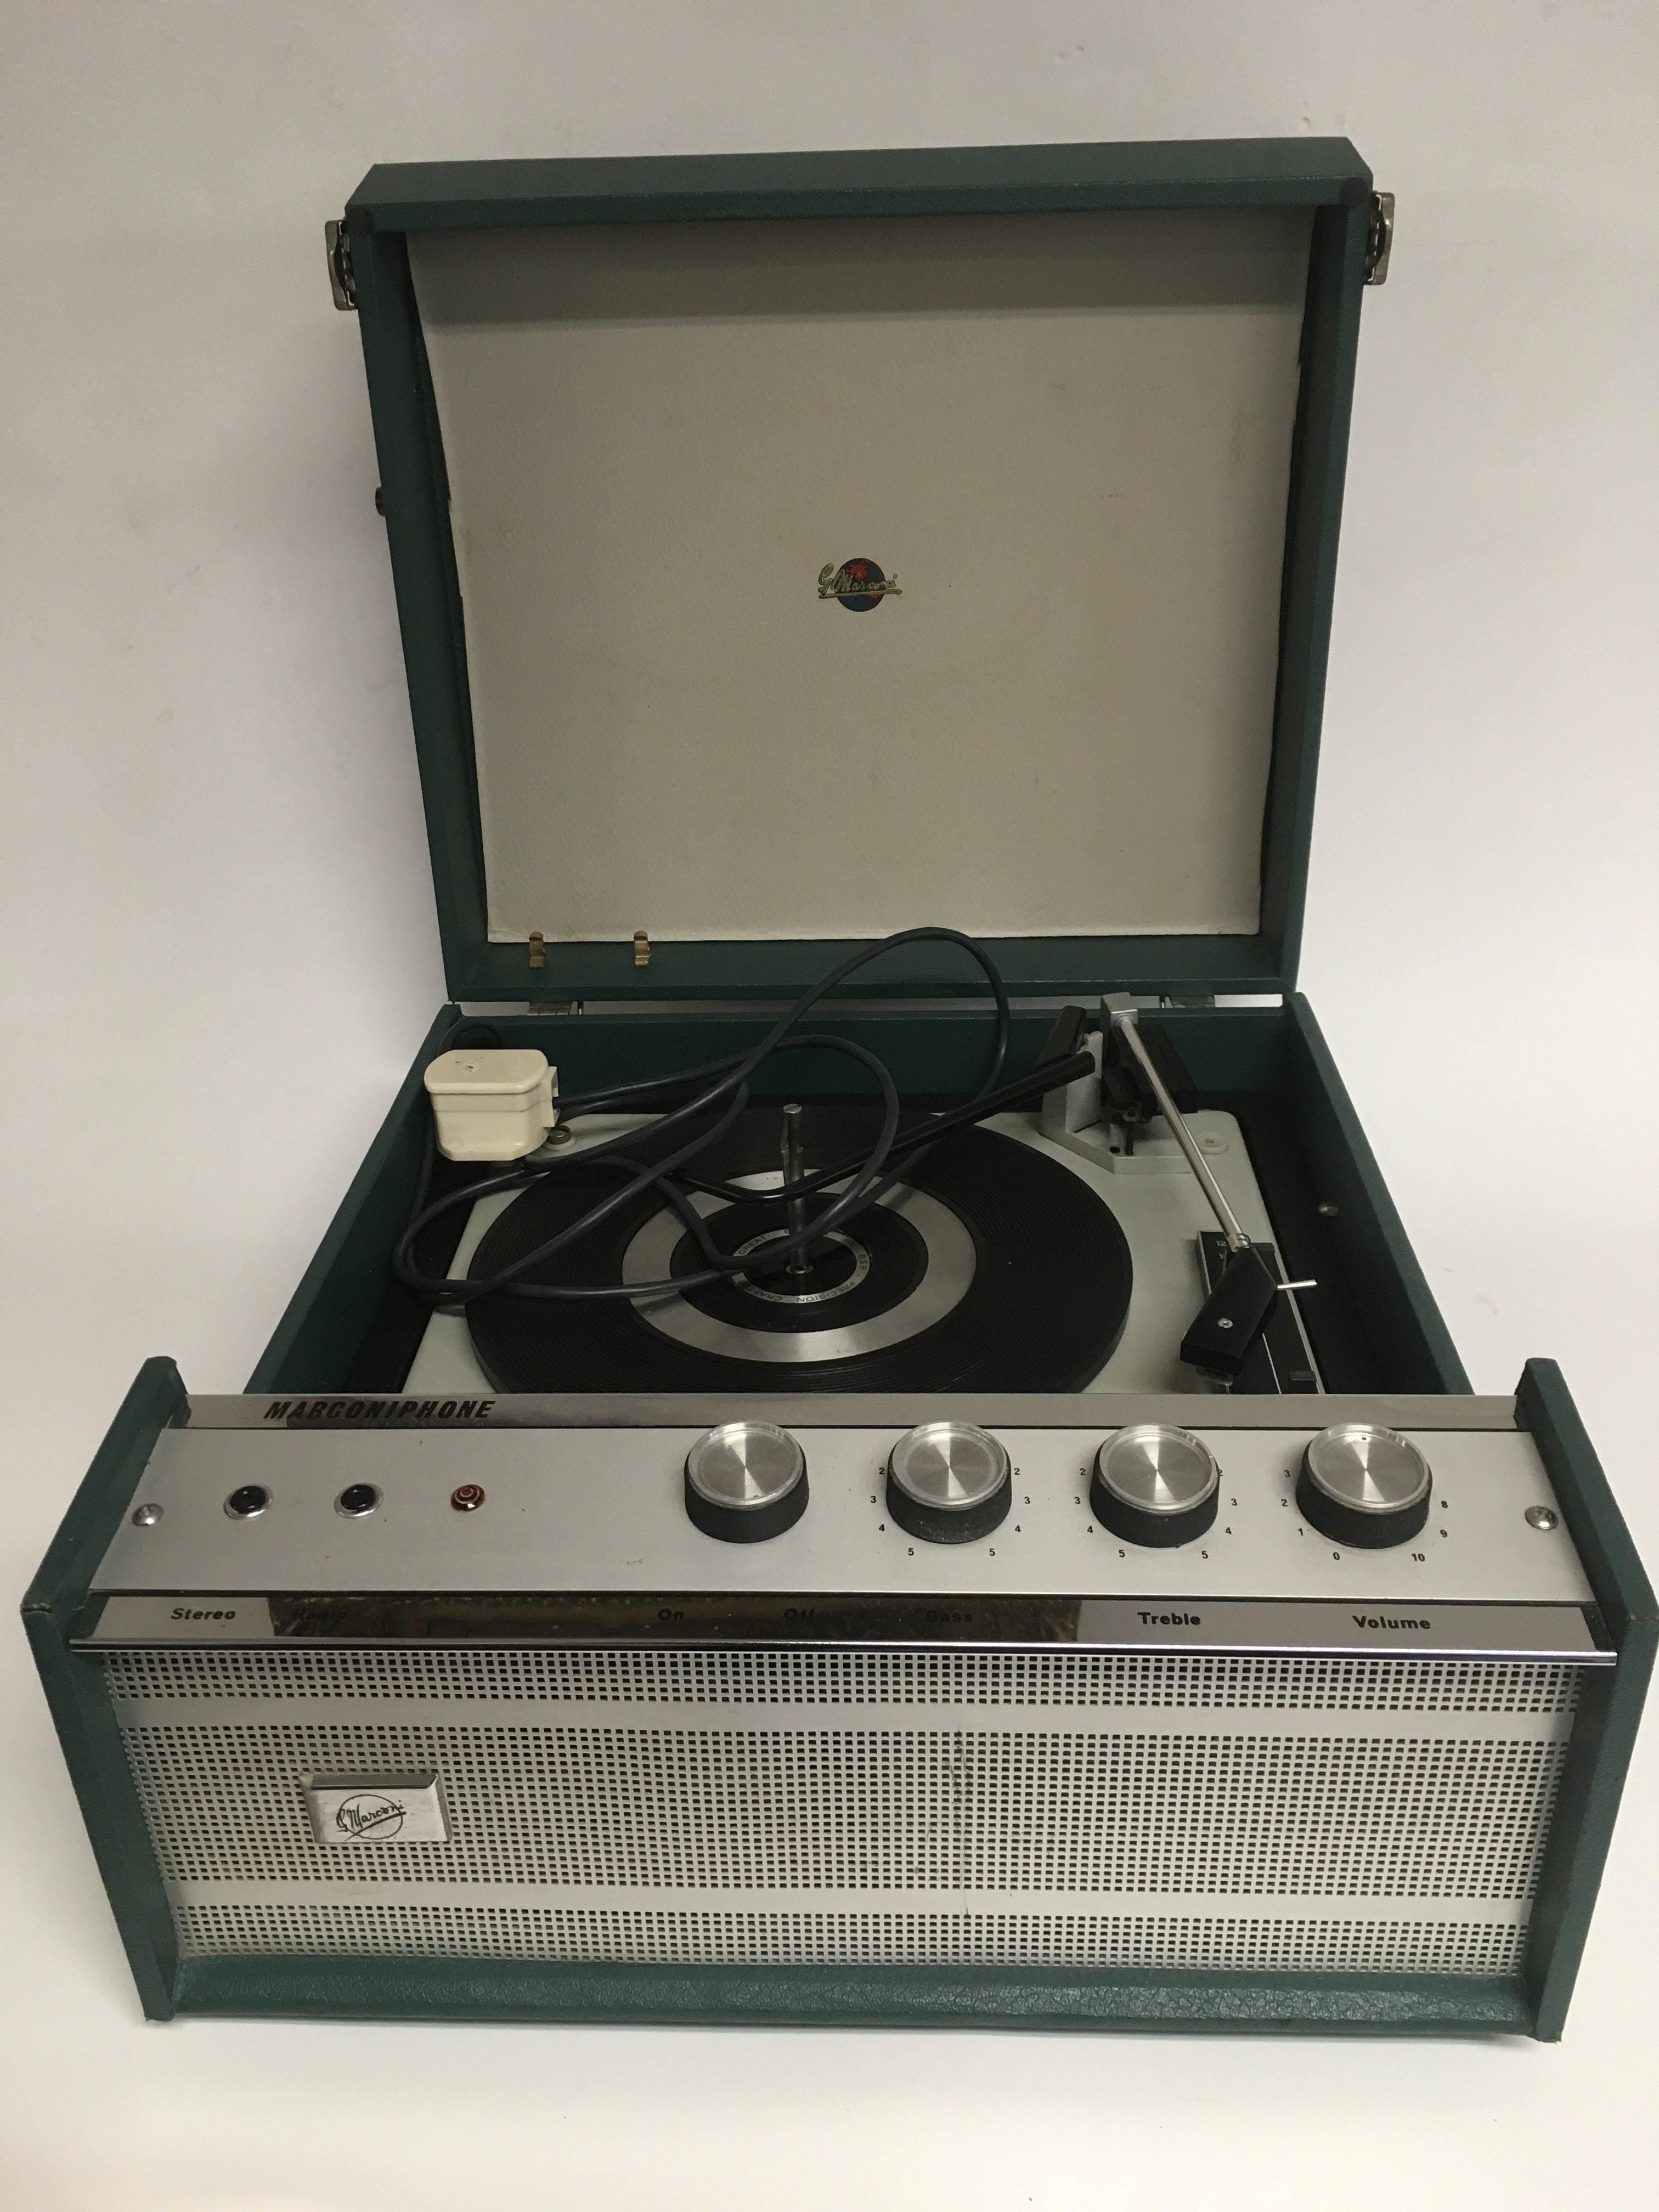 A vintage Marconiphone autochanger record player.